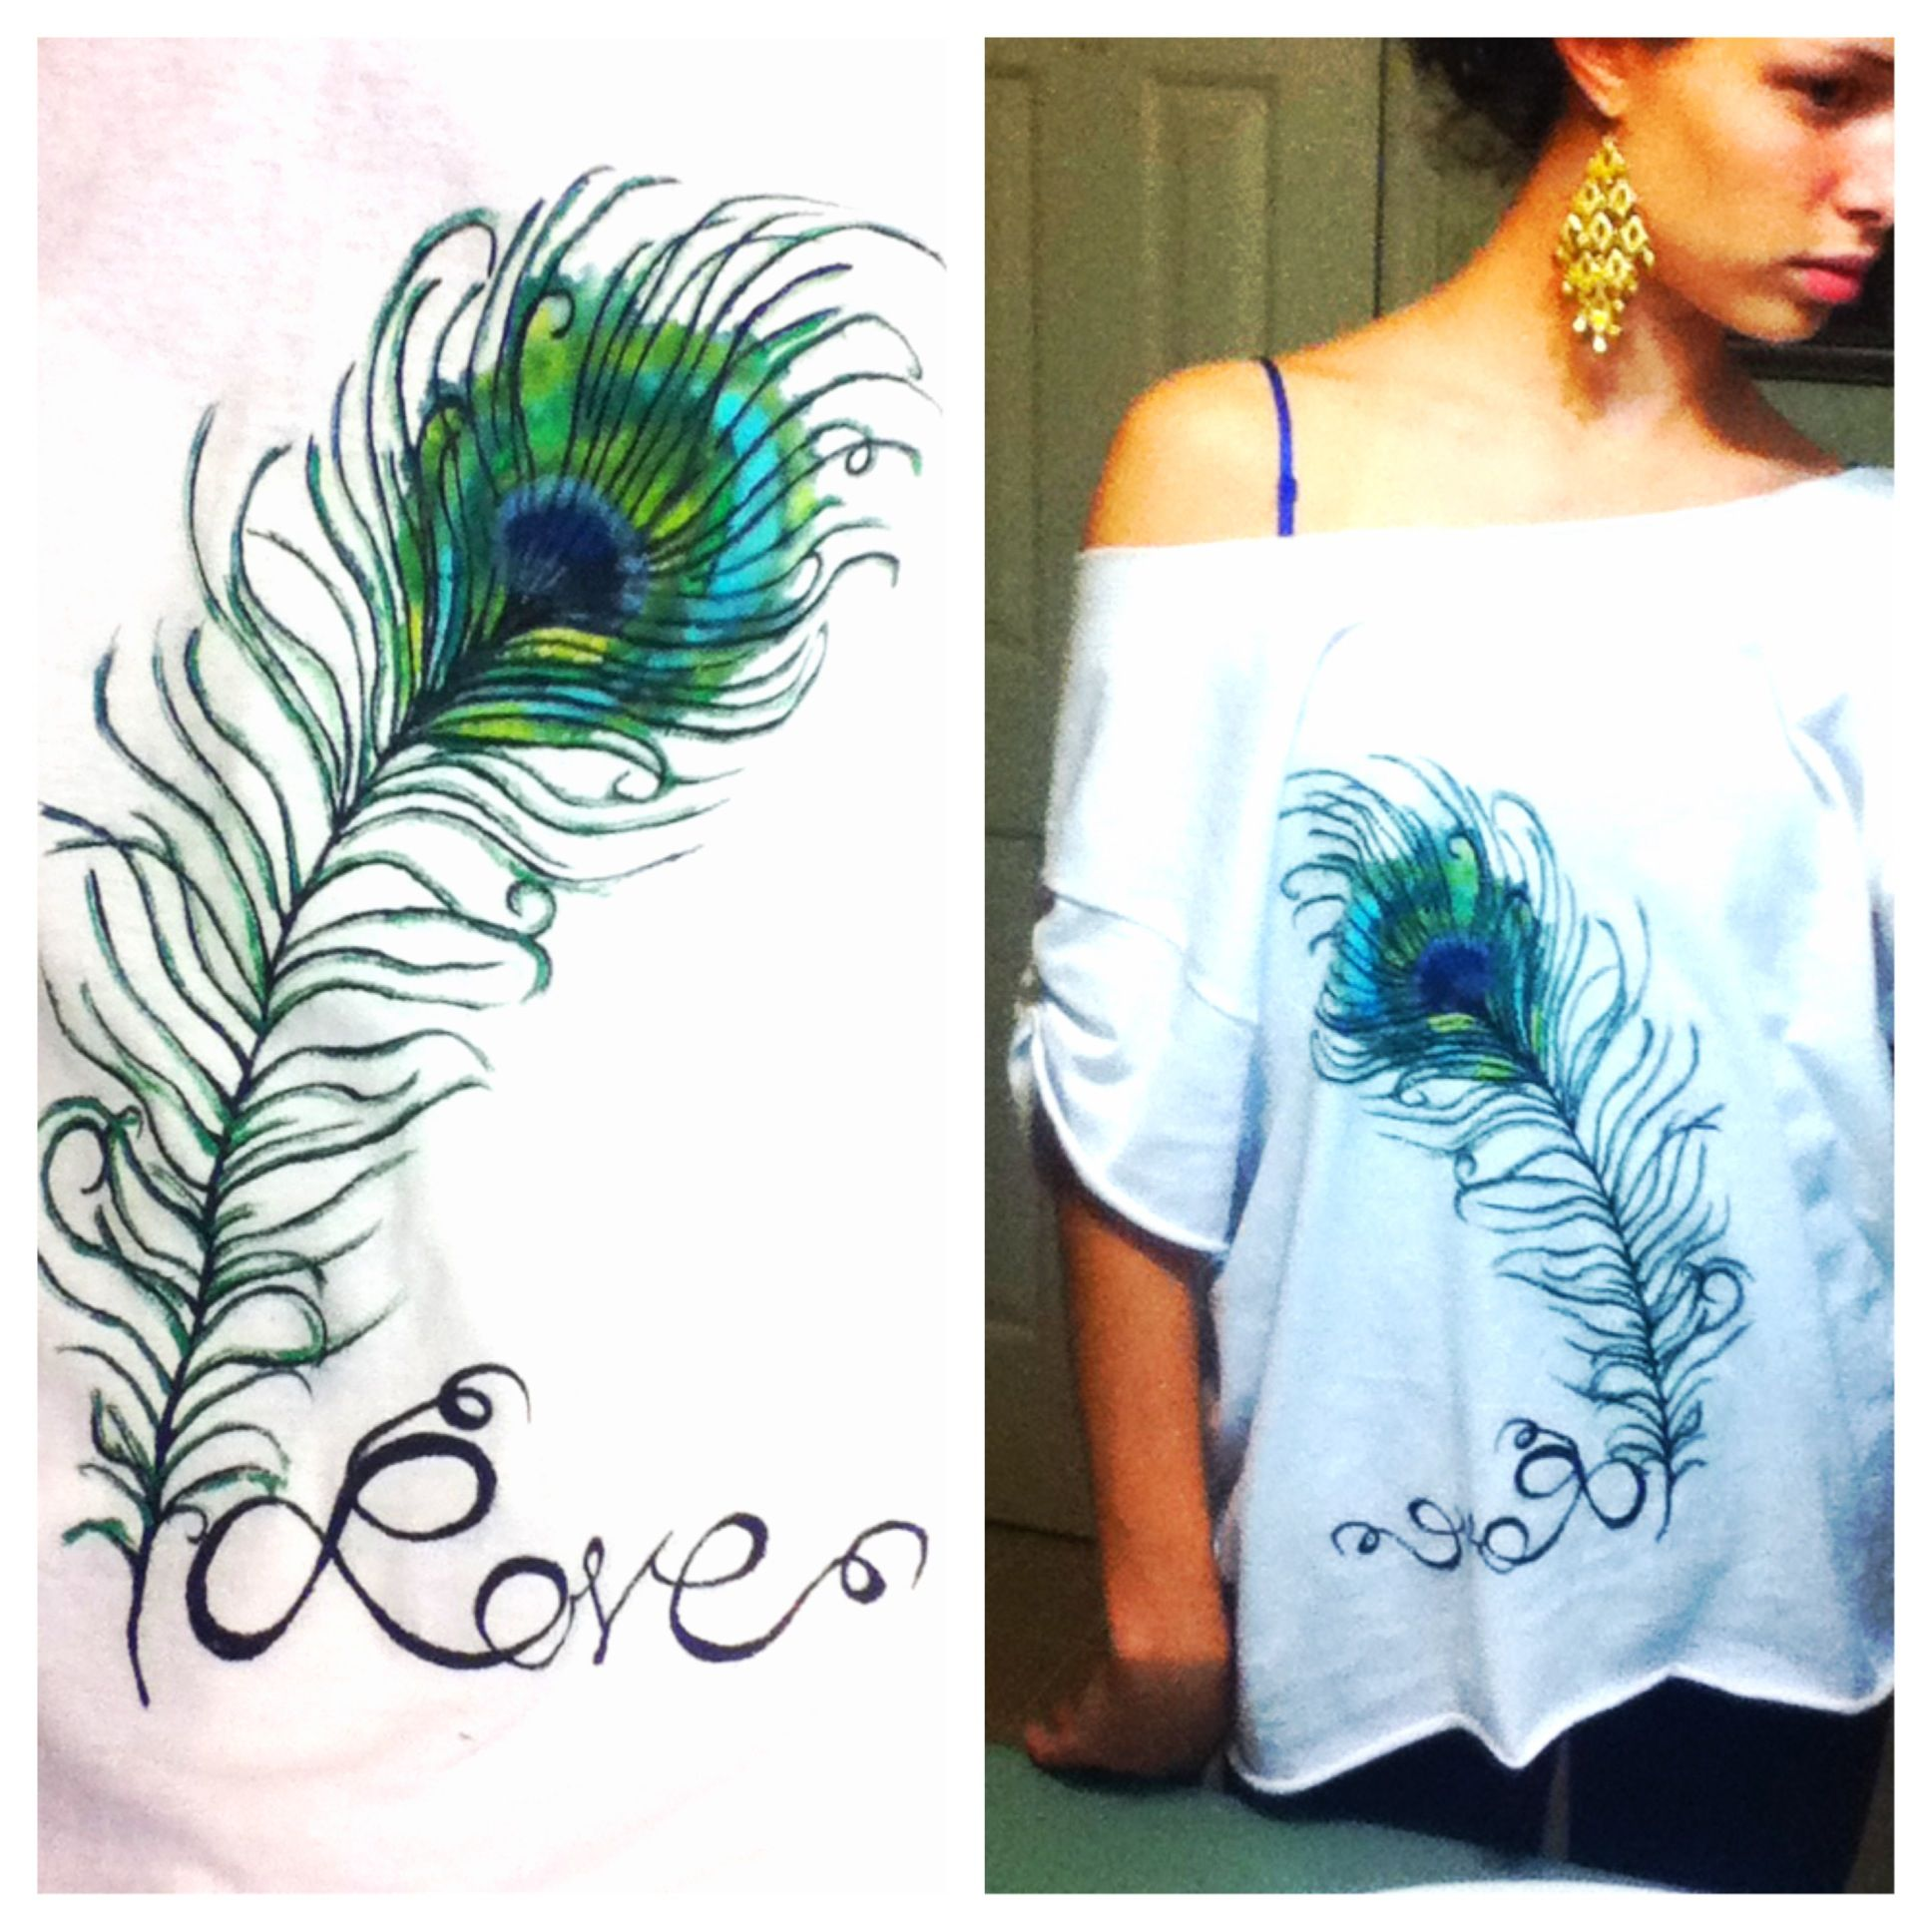 Bettwäsche Pfau Diy Tshirt Hand Painted Peacock Feather With Watered Down